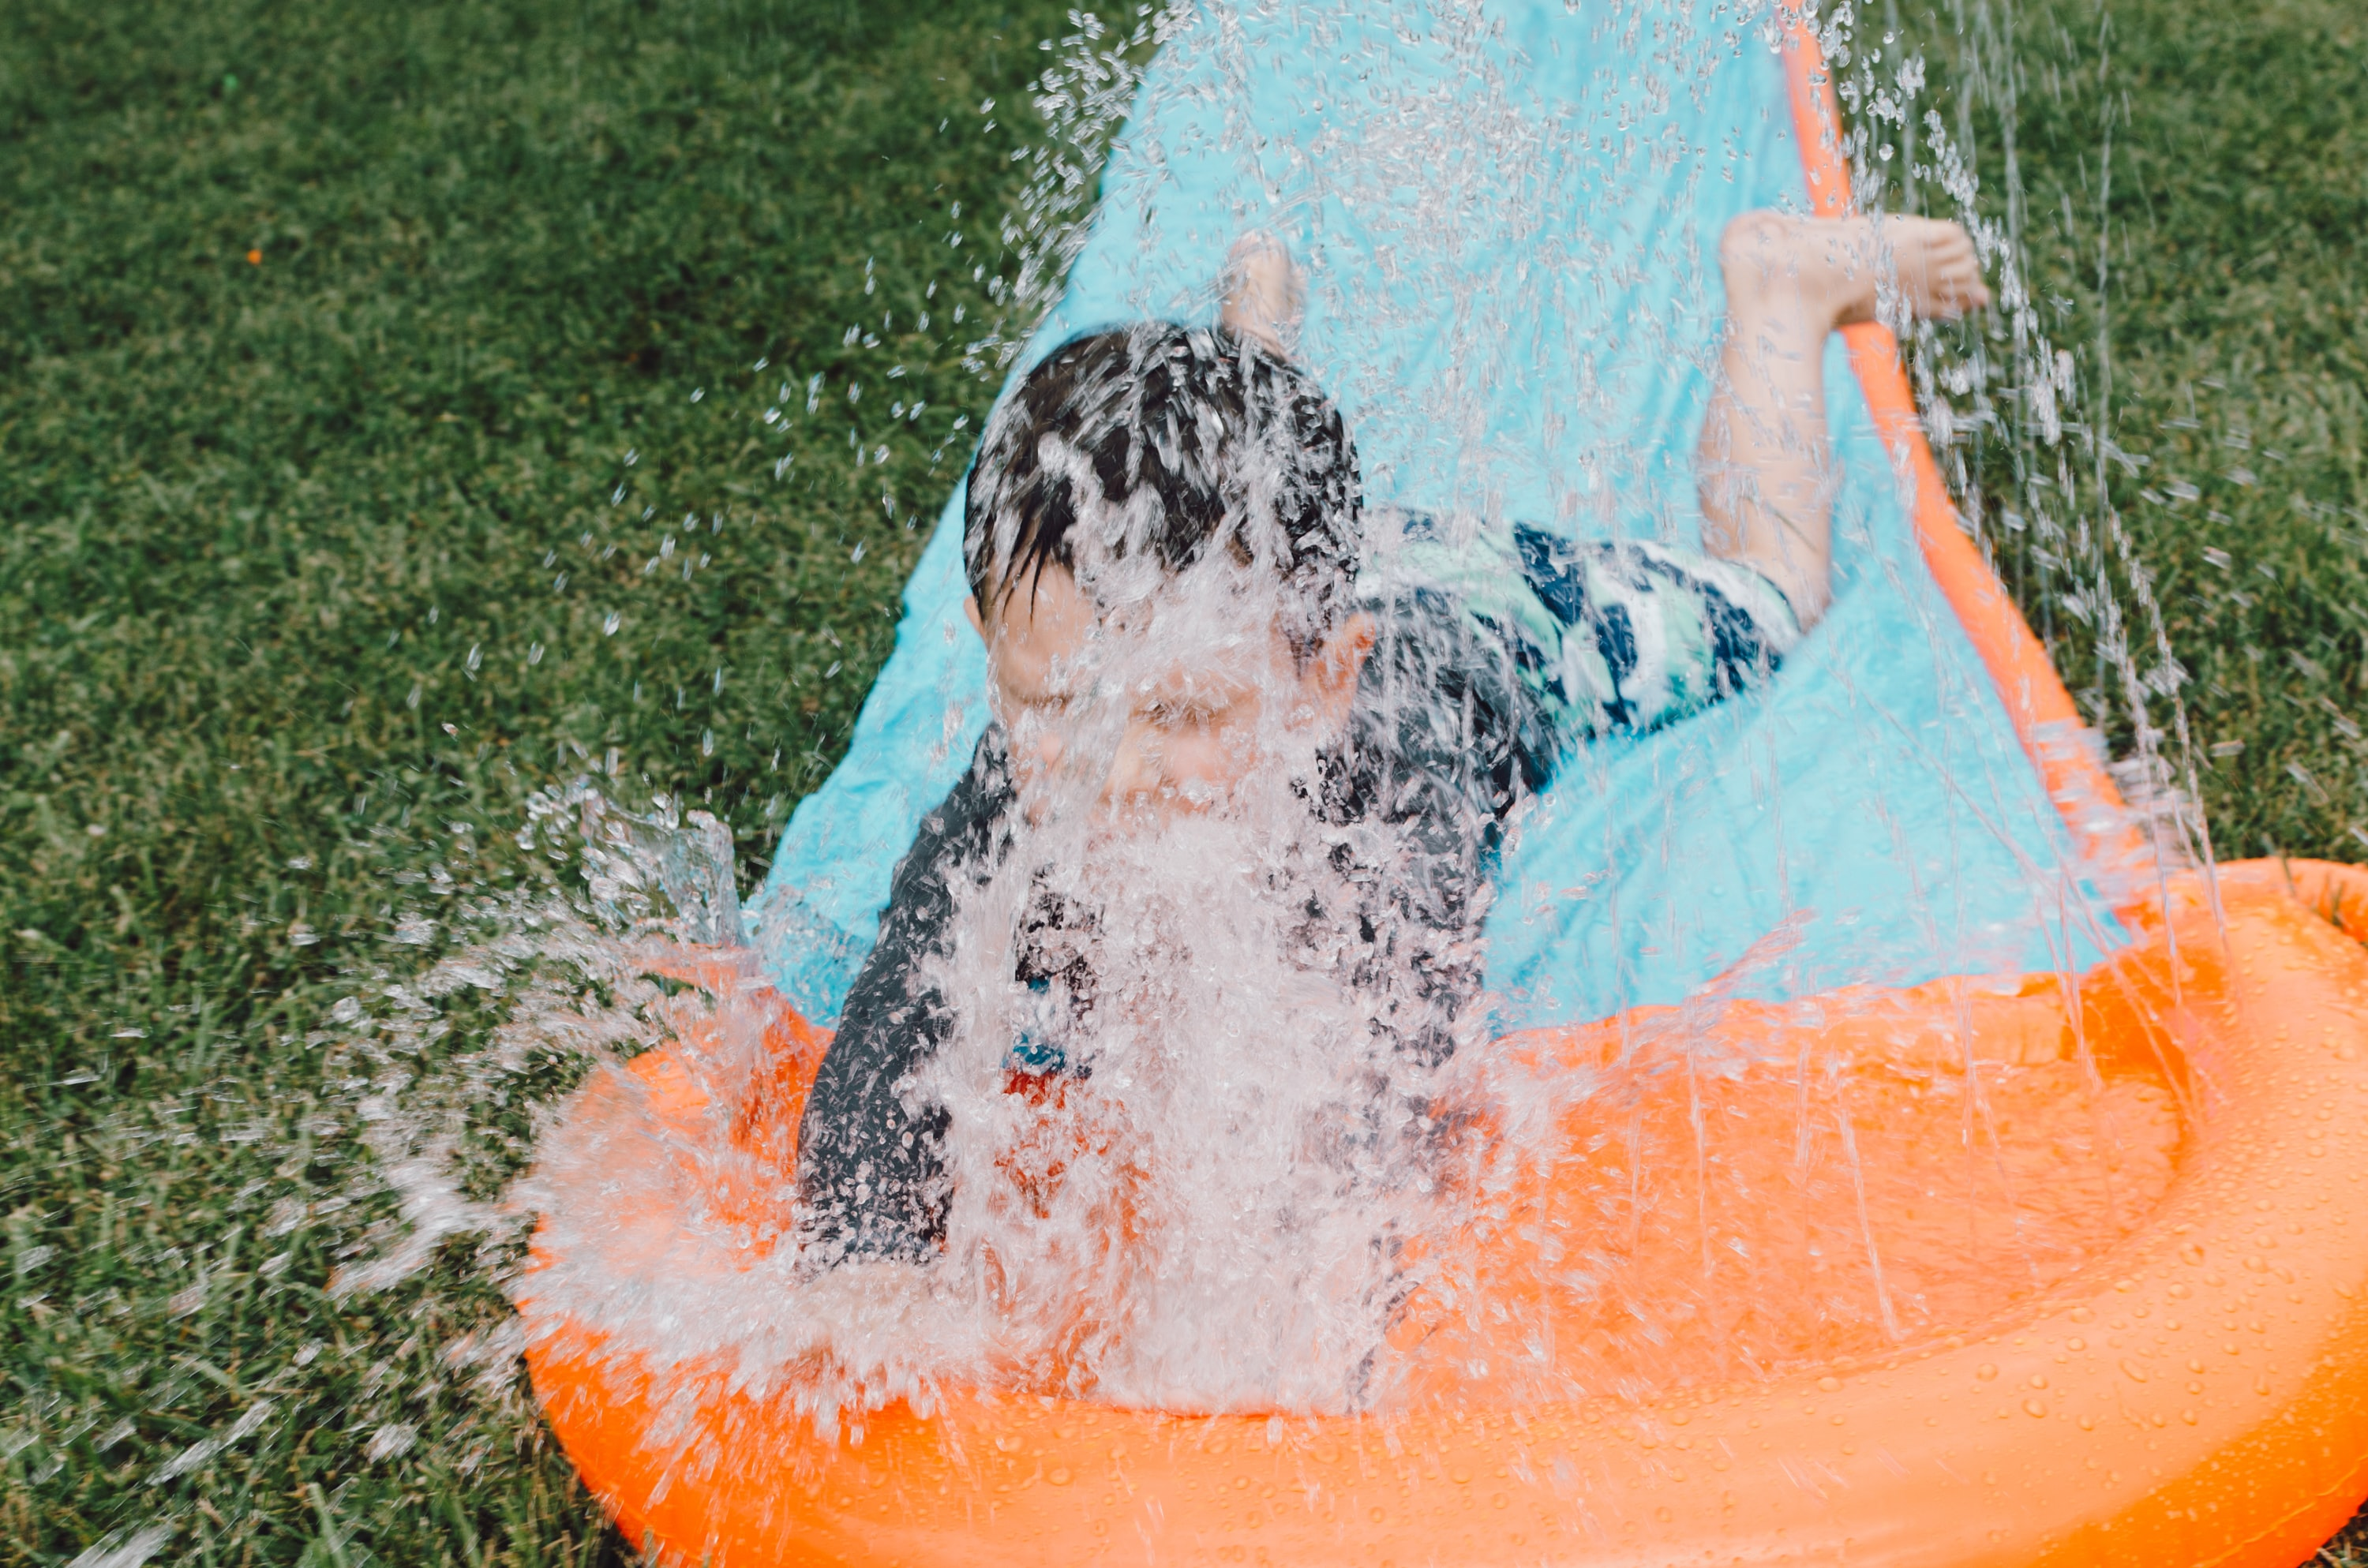 child sliding on blue and orange slippery pad with water splash at daytime